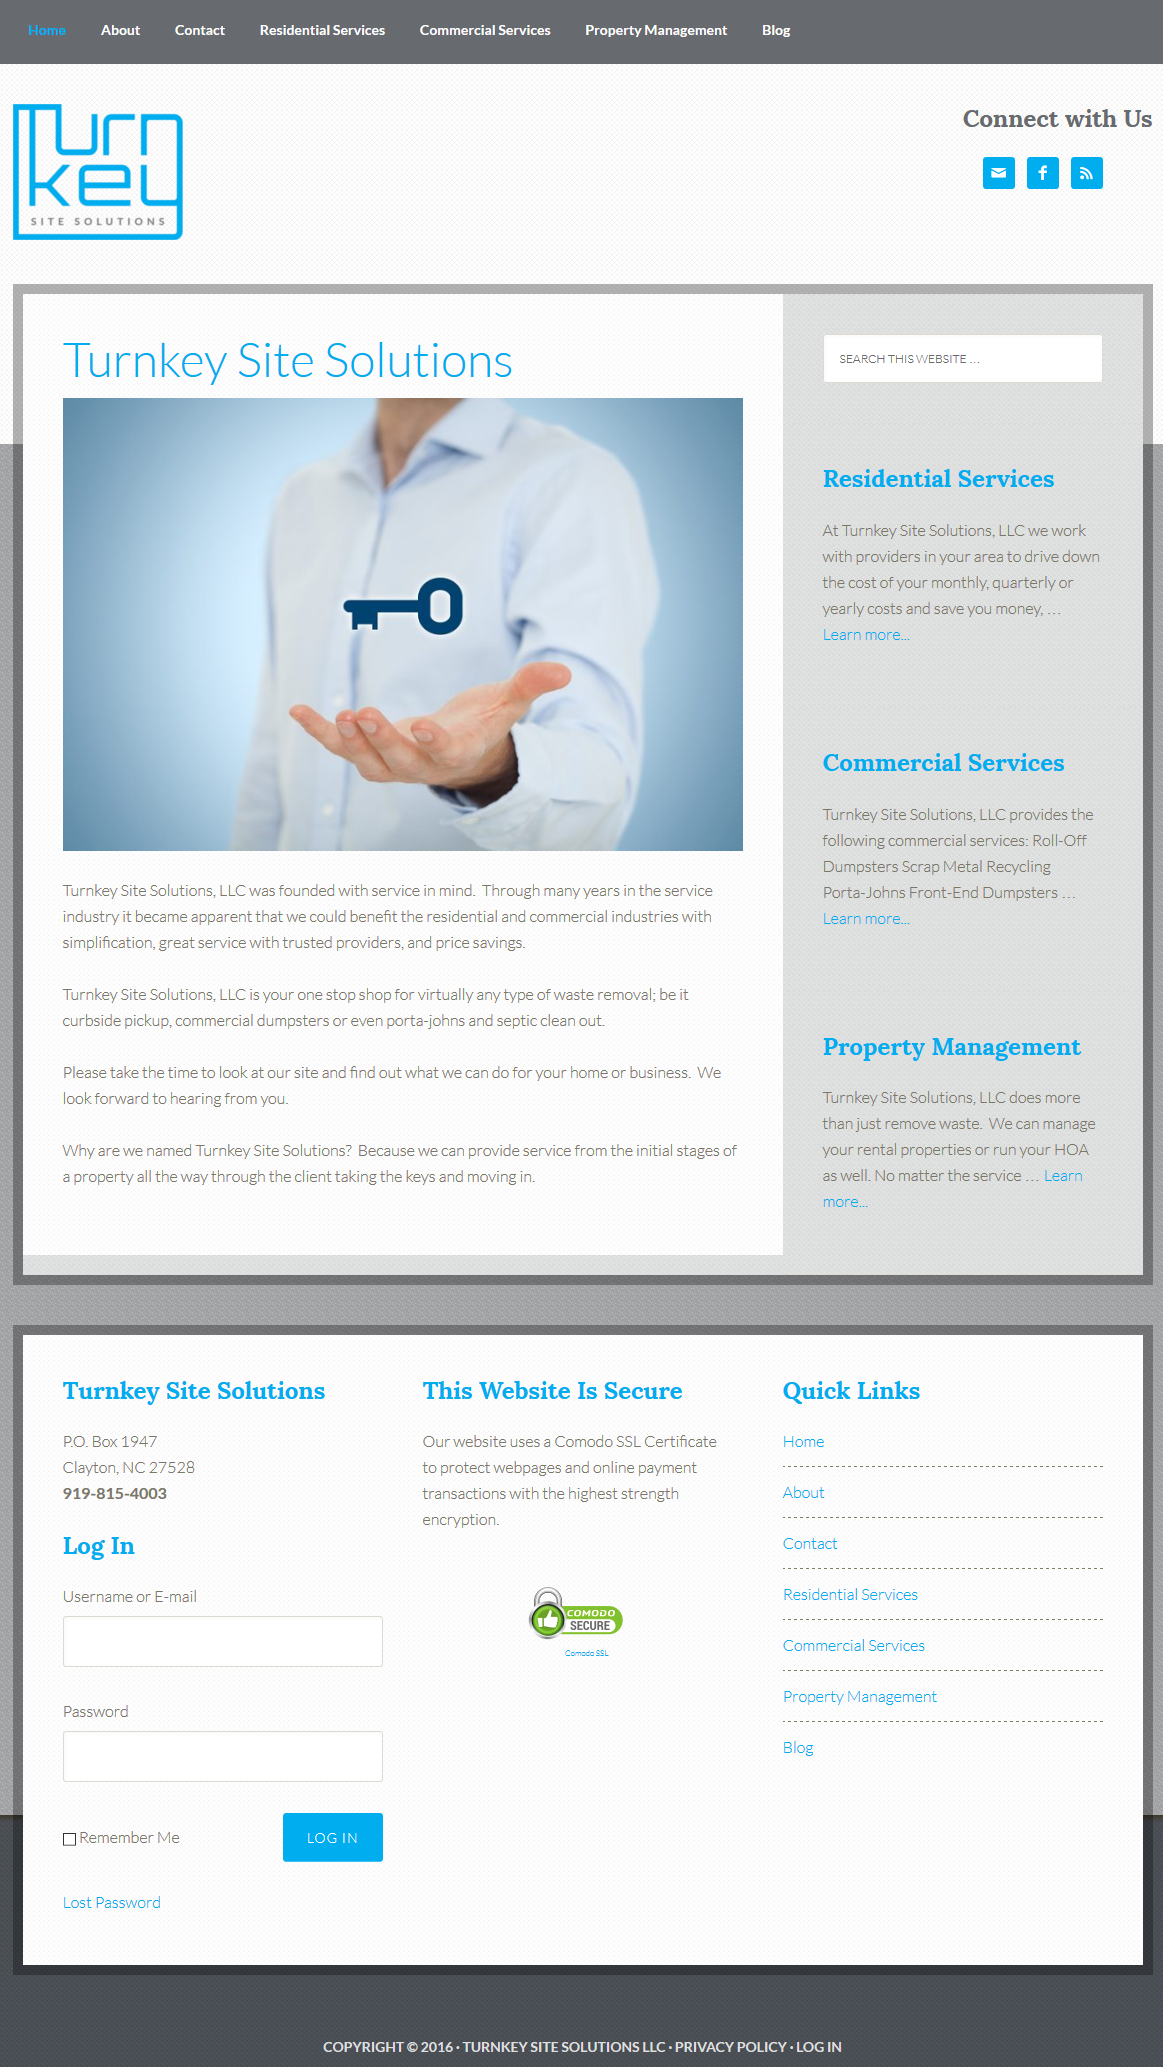 Turnkey Site Solutions Homepage Screenshot